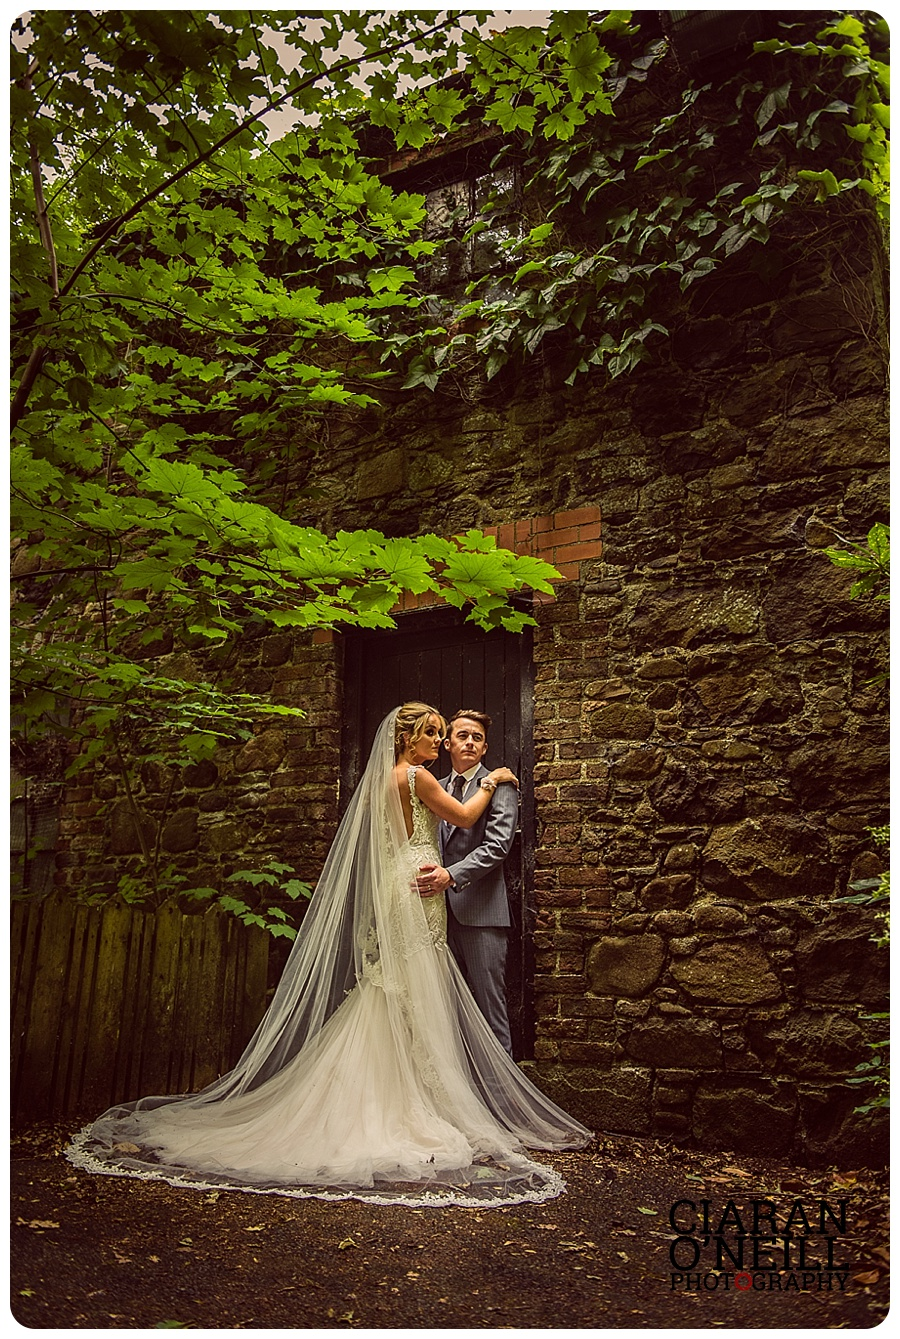 Seana & Phelim's wedding at the Woodville Arms by Ciaran O'Neill Photography